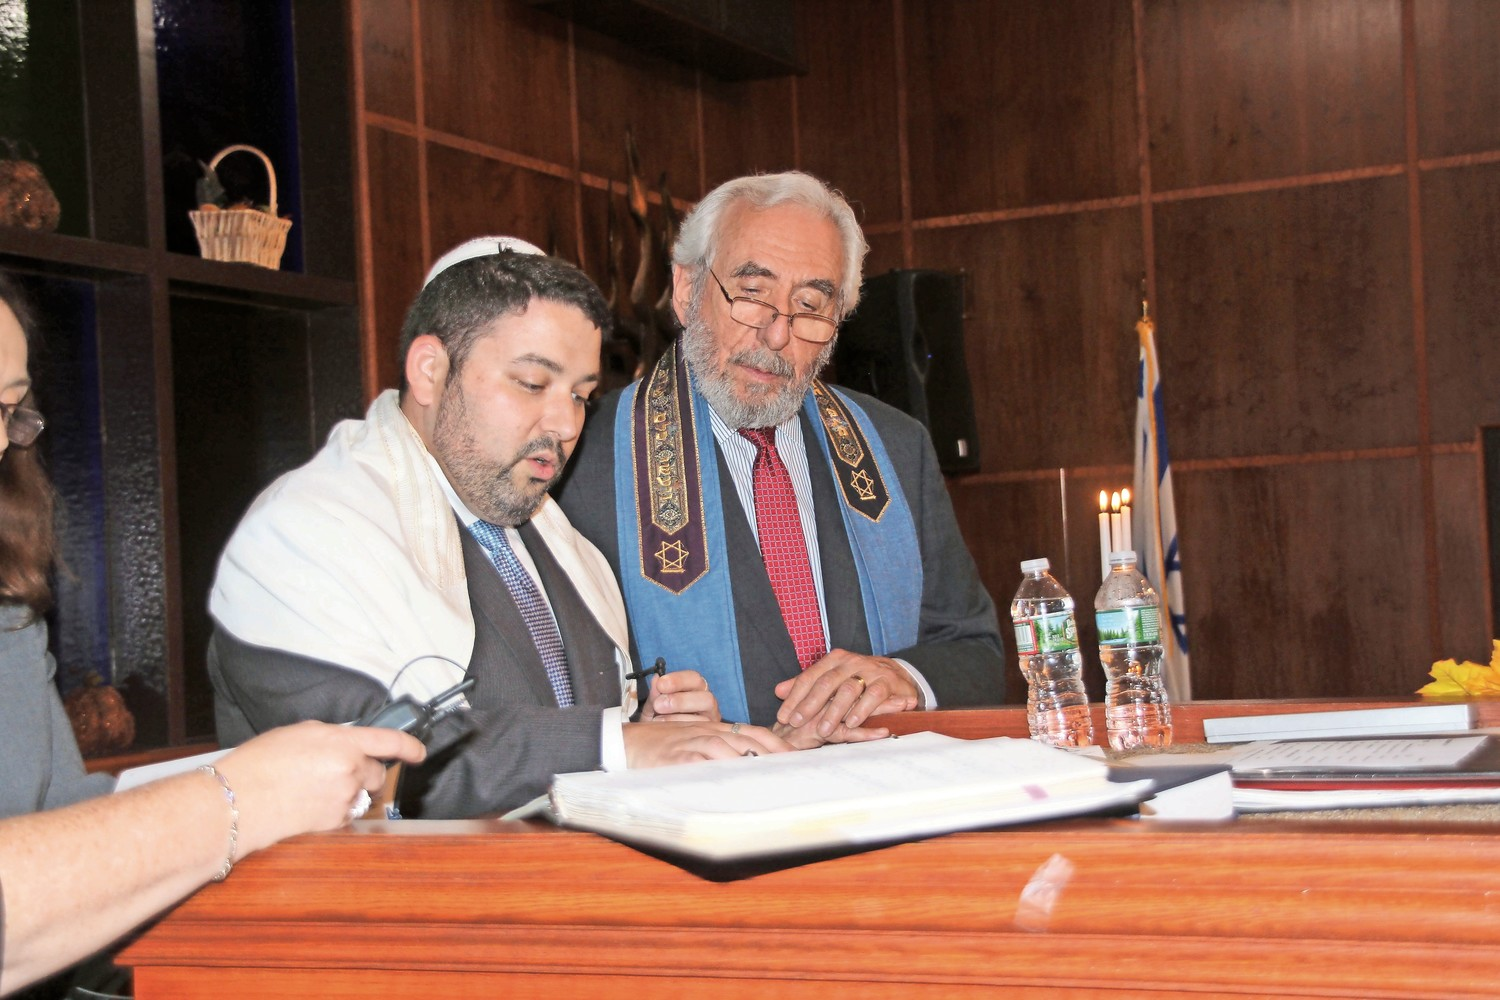 Rabbi Daniel Bar-Nahum, of Temple Emanu-El of East Meadow, and Rabbi Howard Nacht, of Temple B'Nai Torah, led the Simchat Torah services together.